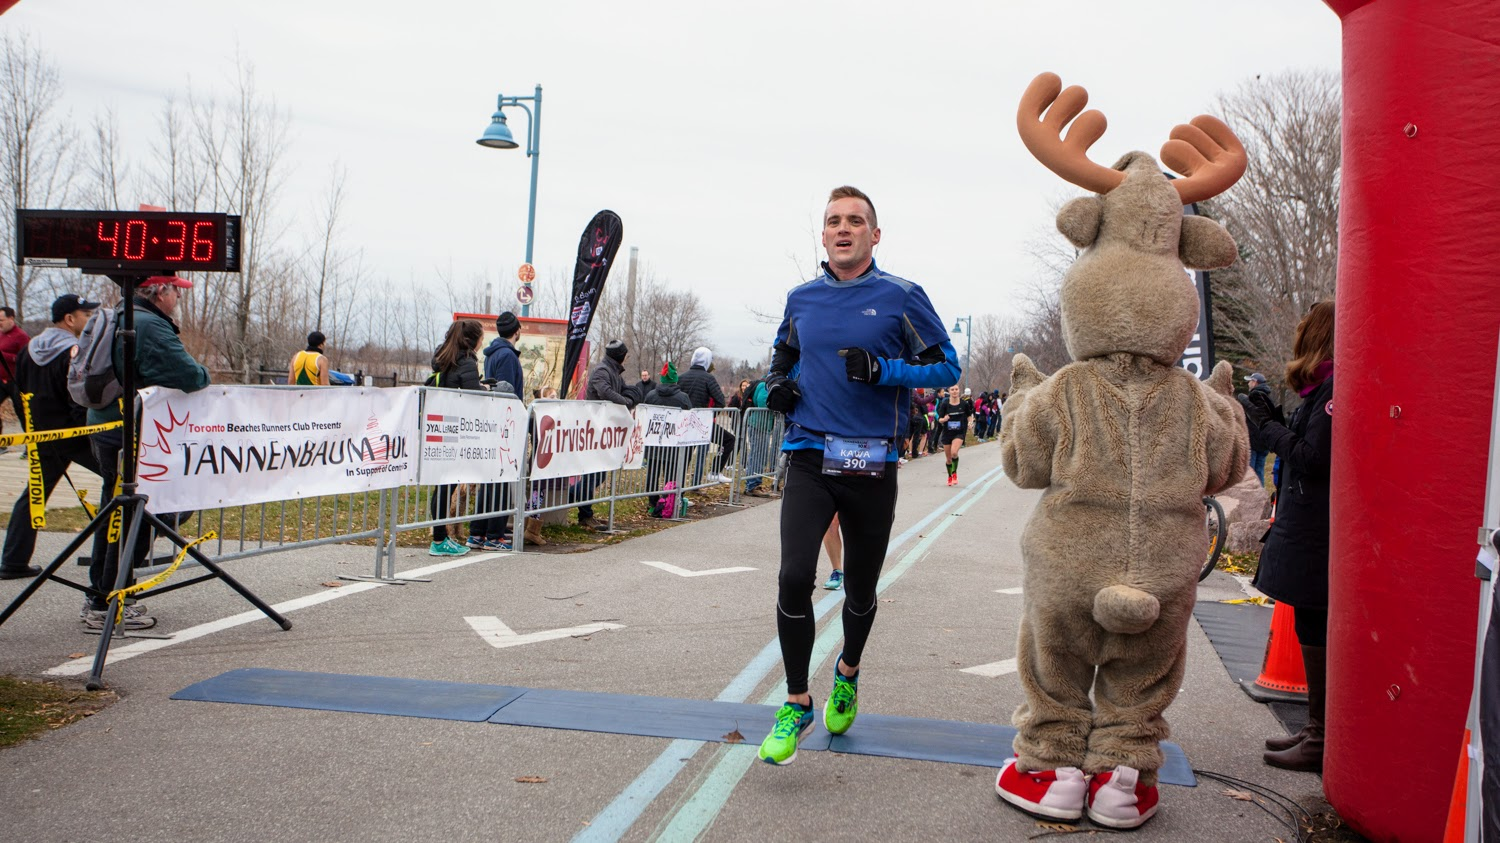 Crossing the finish line at the 2016 Tannenbaum 10k at the 40:36 mark, setting my 10k PB at 40:29